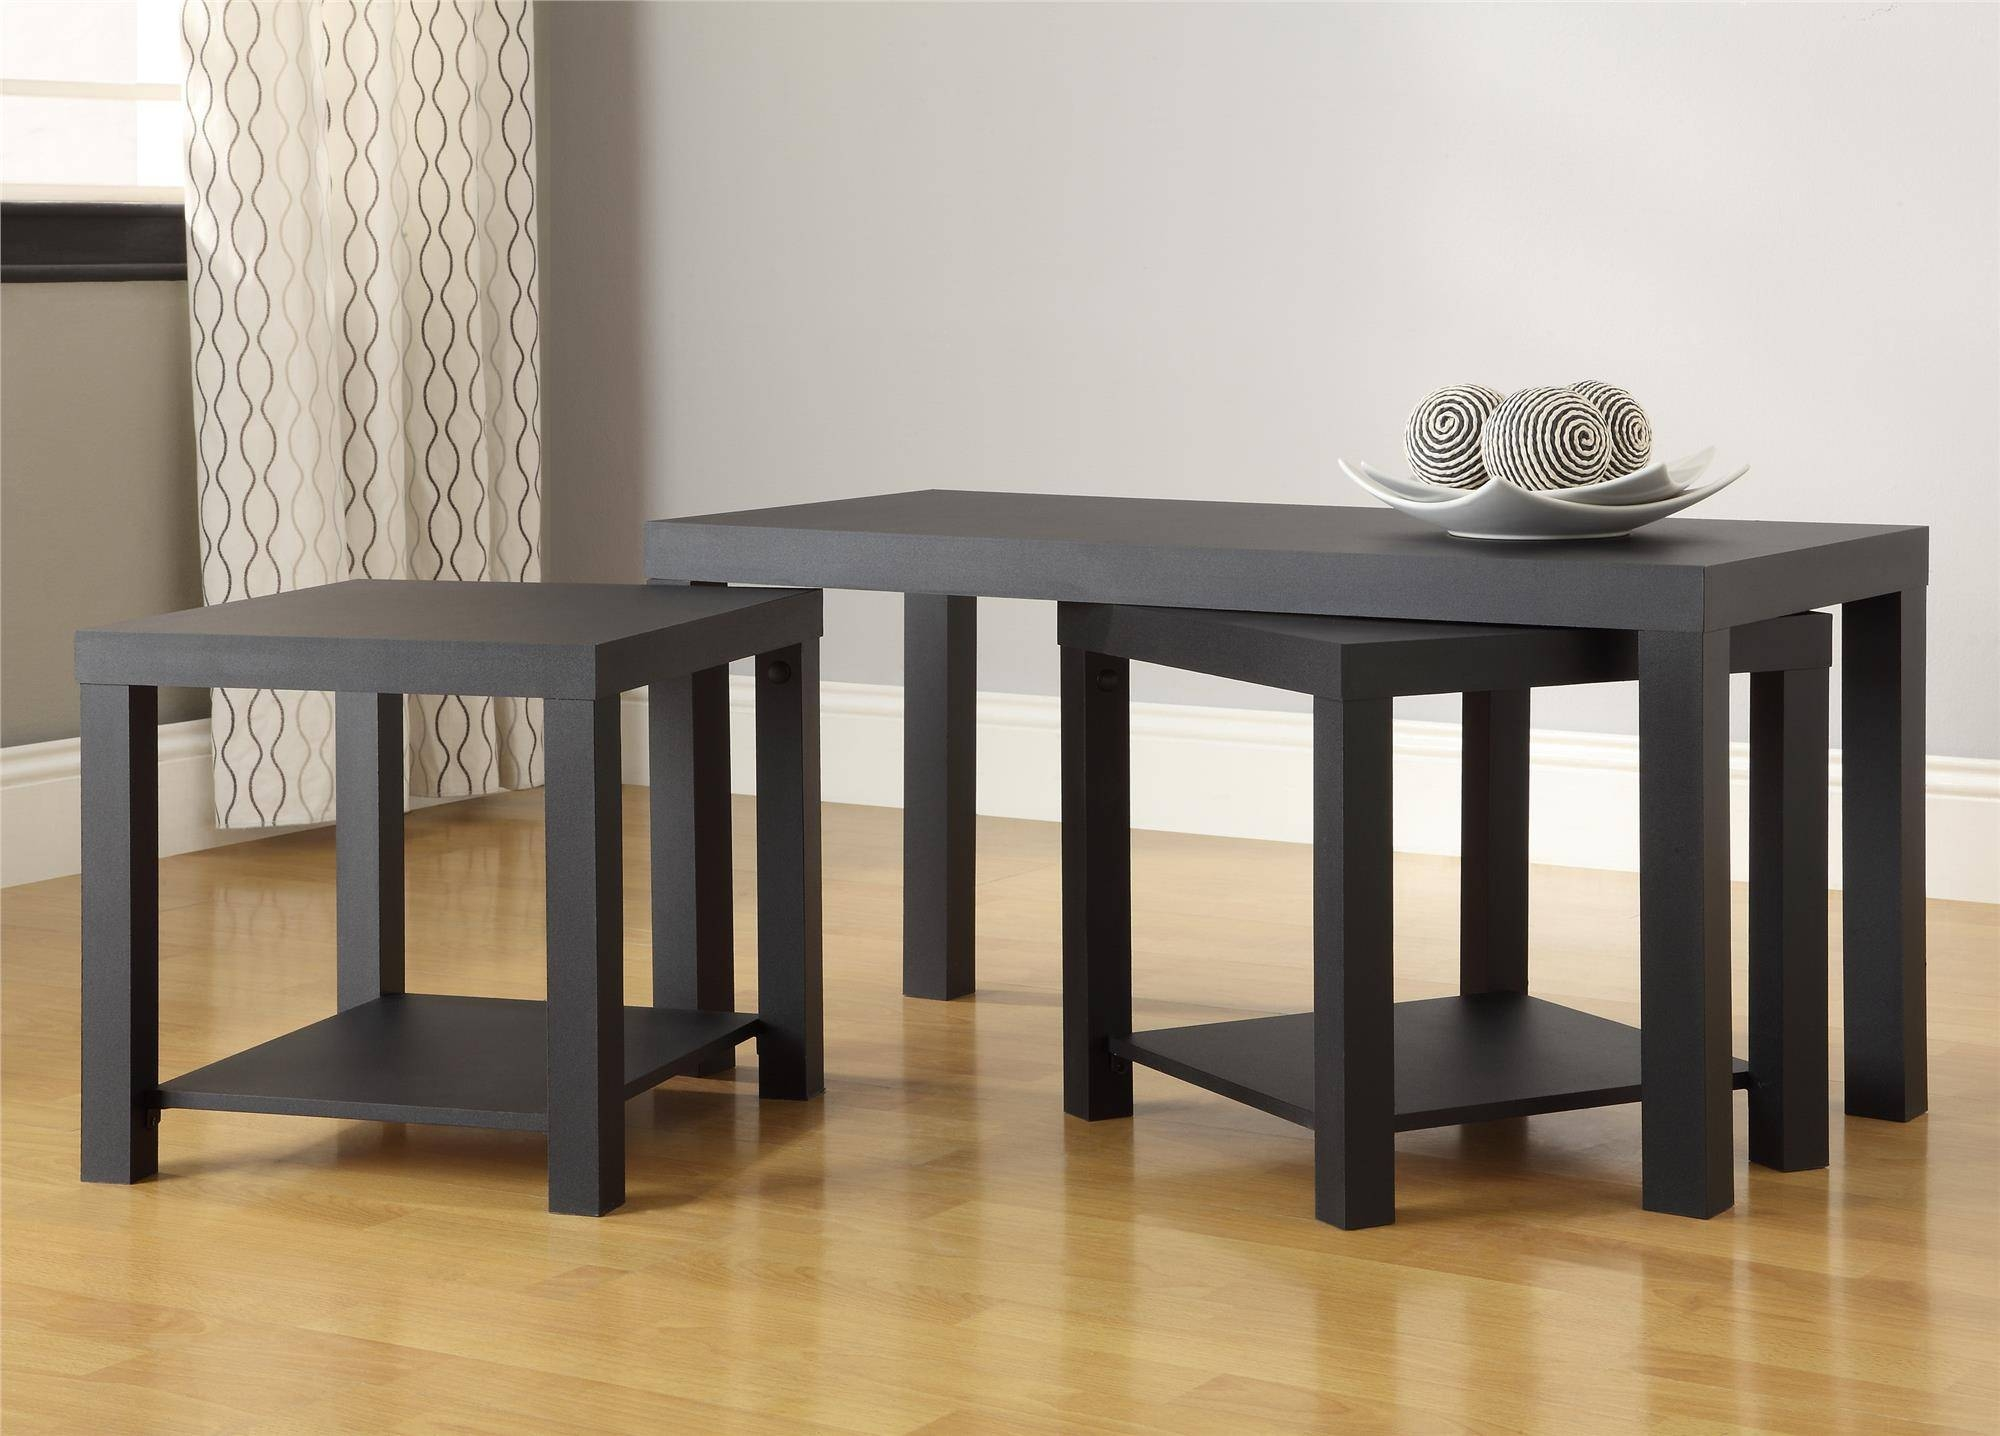 Ameriwood Furniture | Holly Bay Coffee Table And End Table Set, Black within 2 Piece Coffee Table Sets (Image 3 of 30)